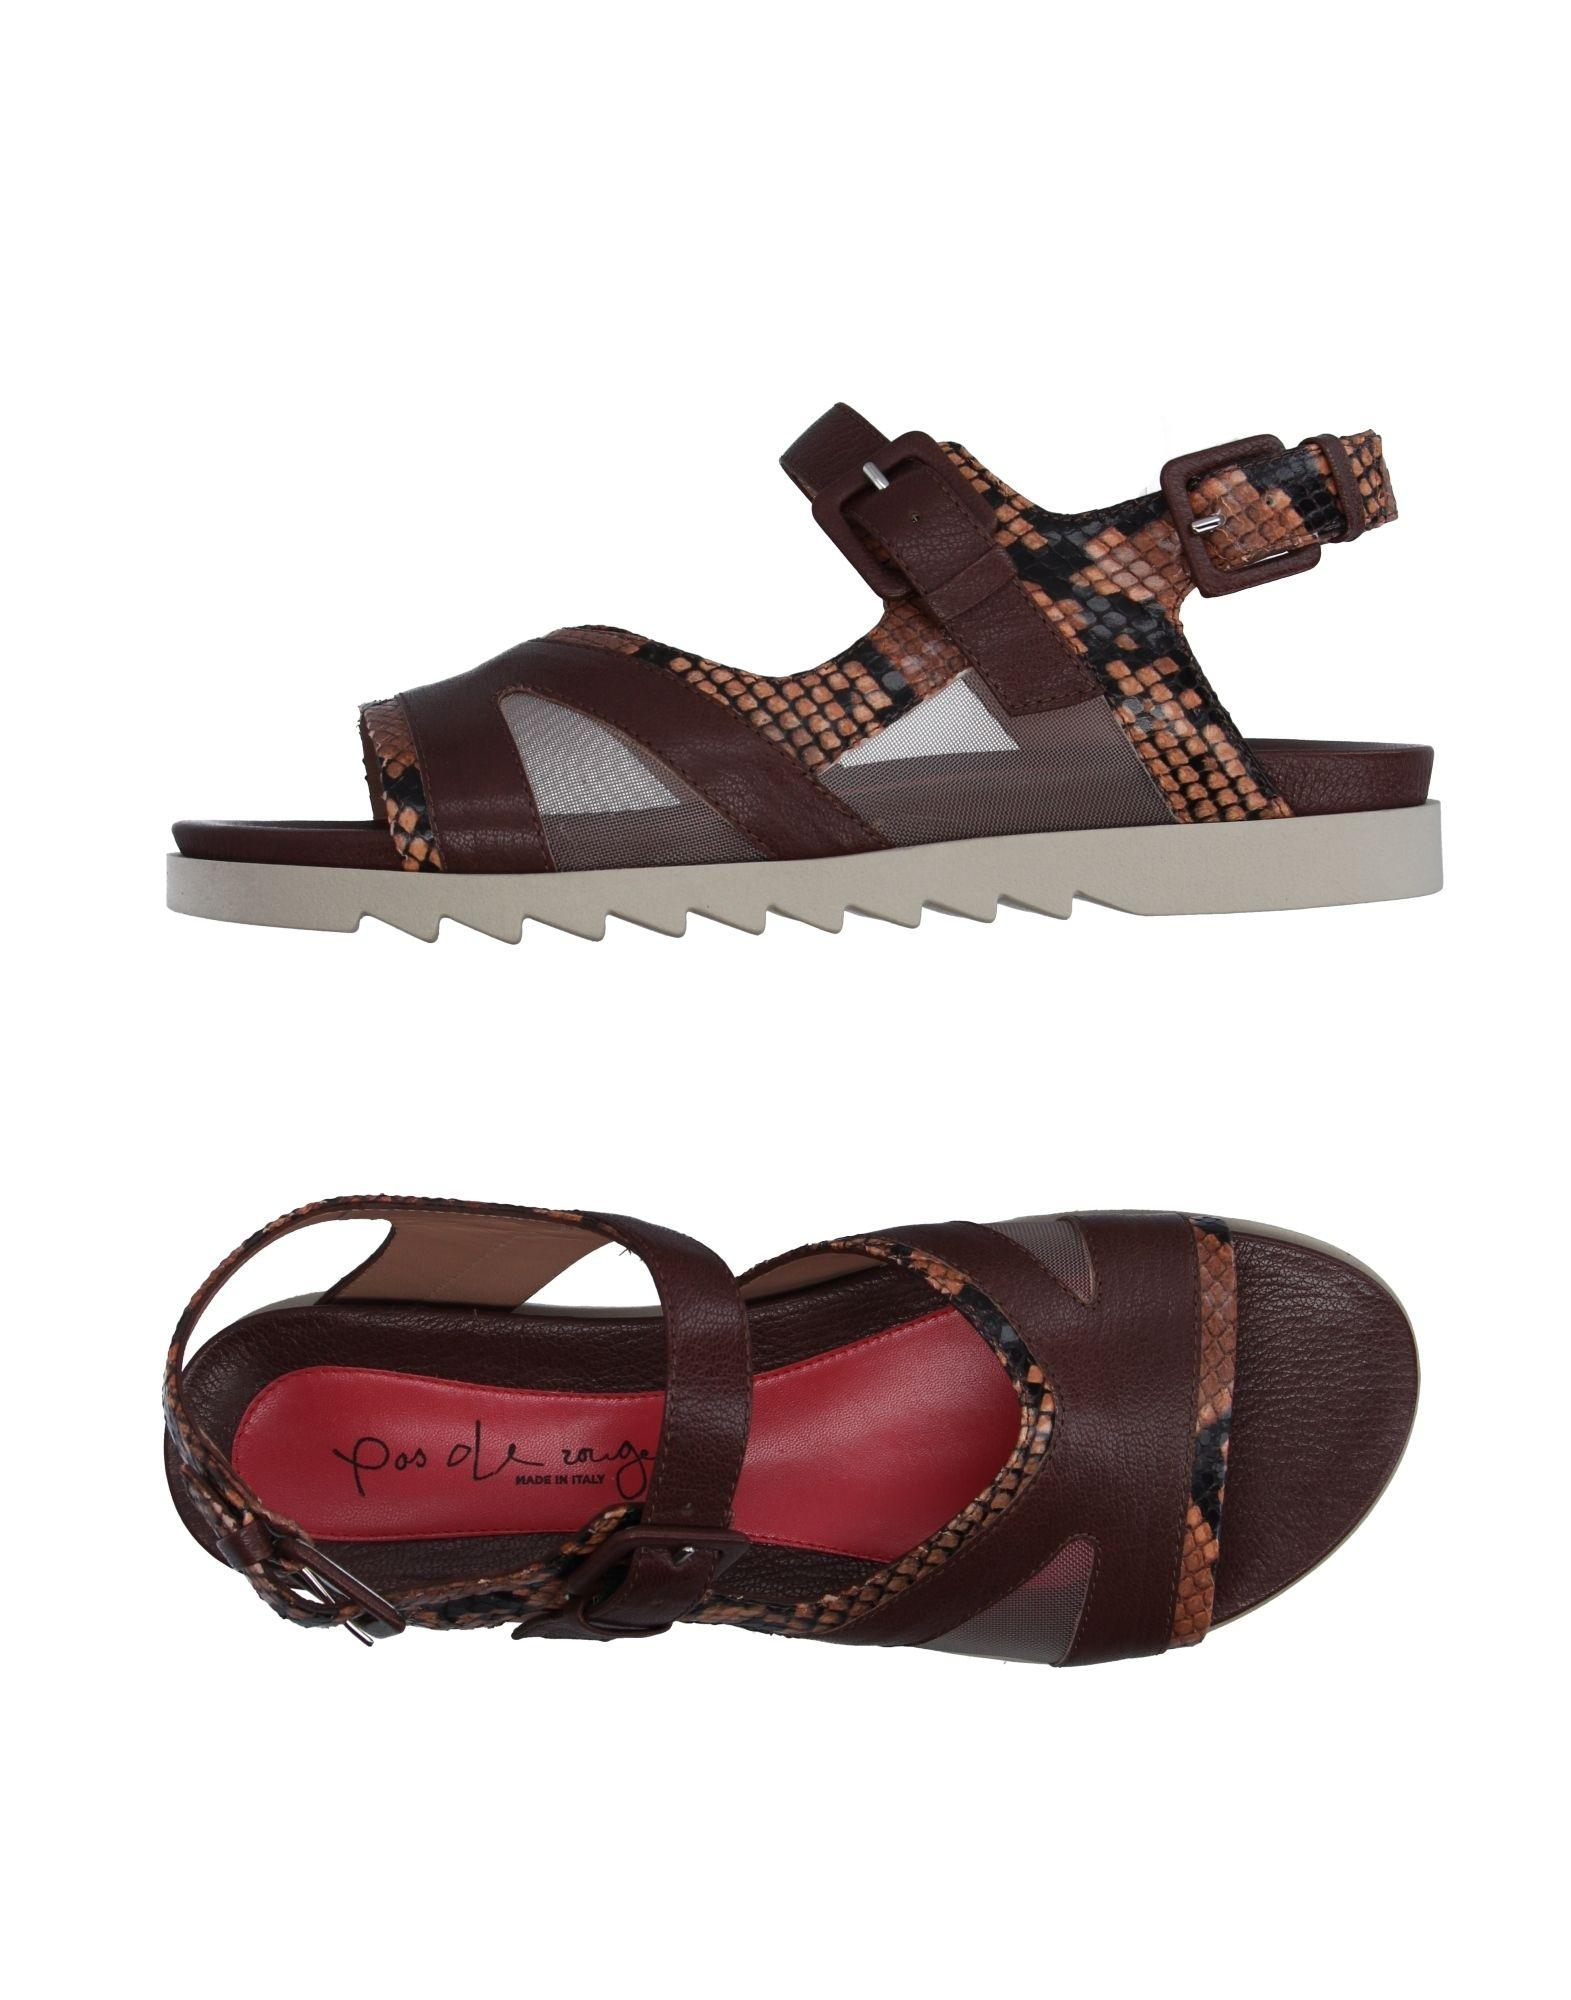 pas de rouge sandals in brown lyst. Black Bedroom Furniture Sets. Home Design Ideas